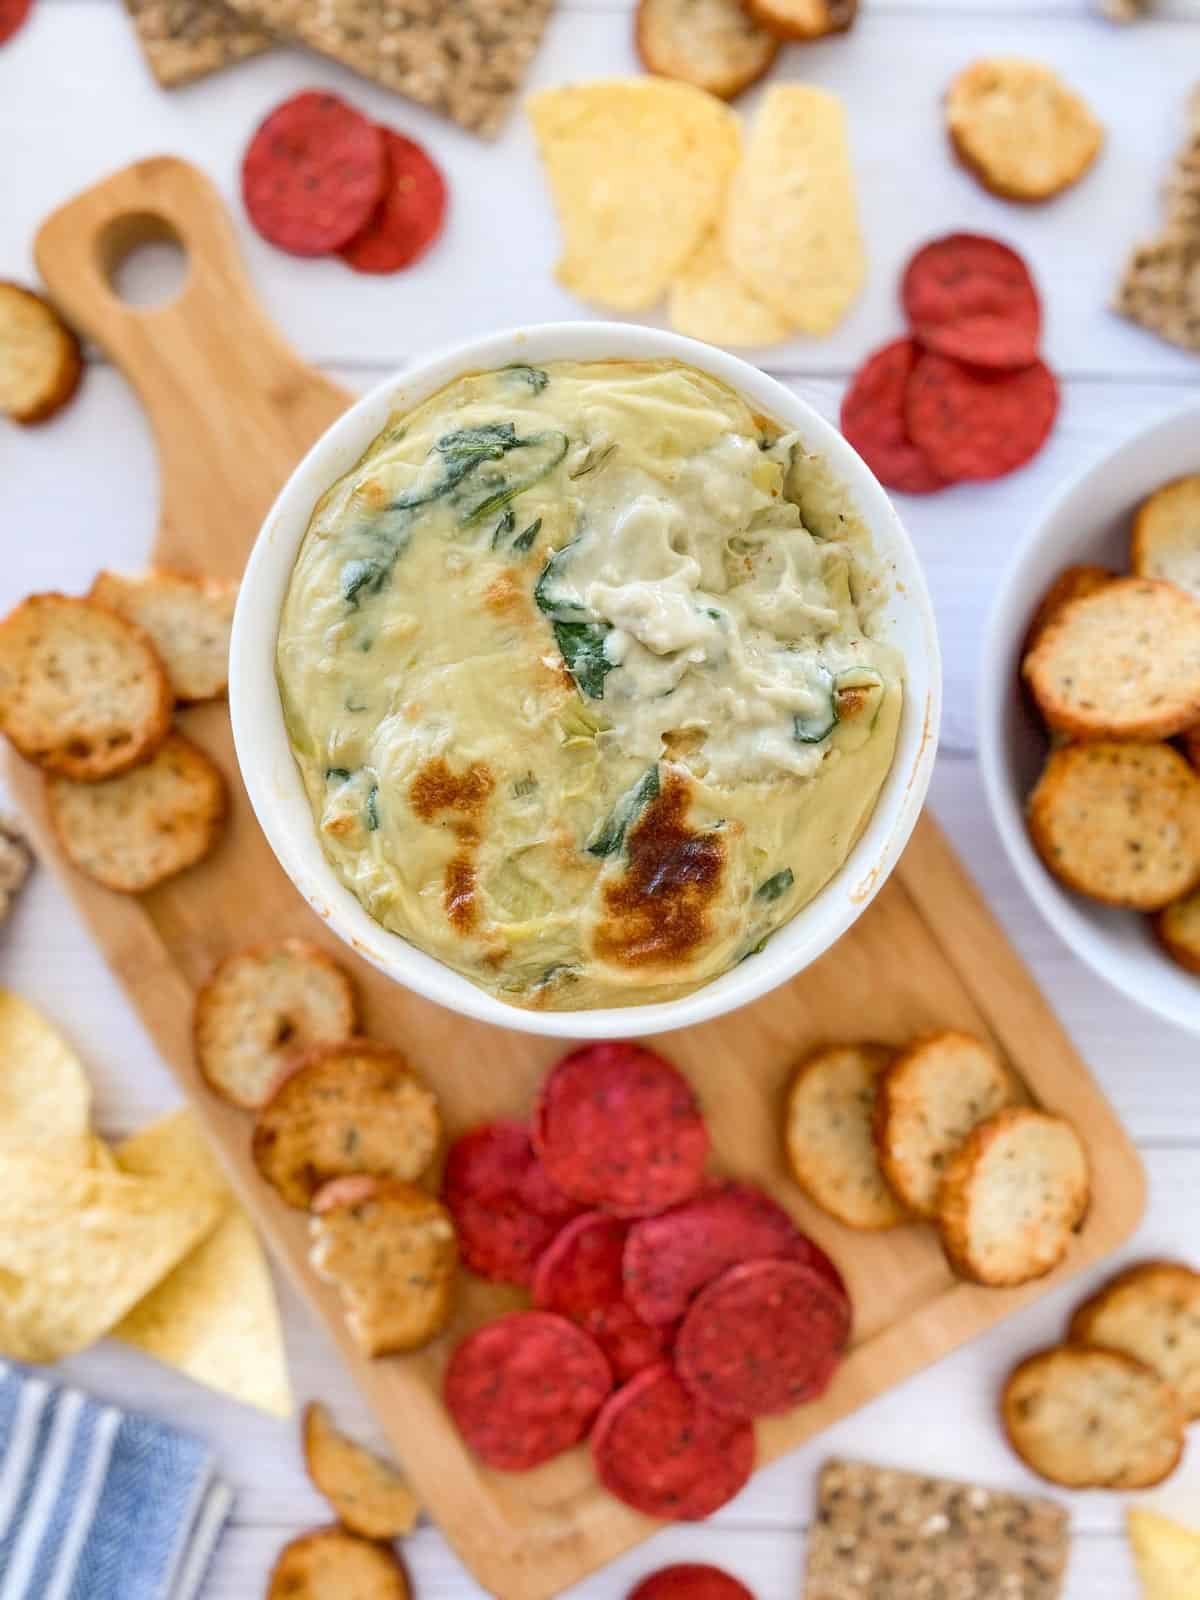 Bowl of vegan spinach dip with crackers and chips scattered around it.